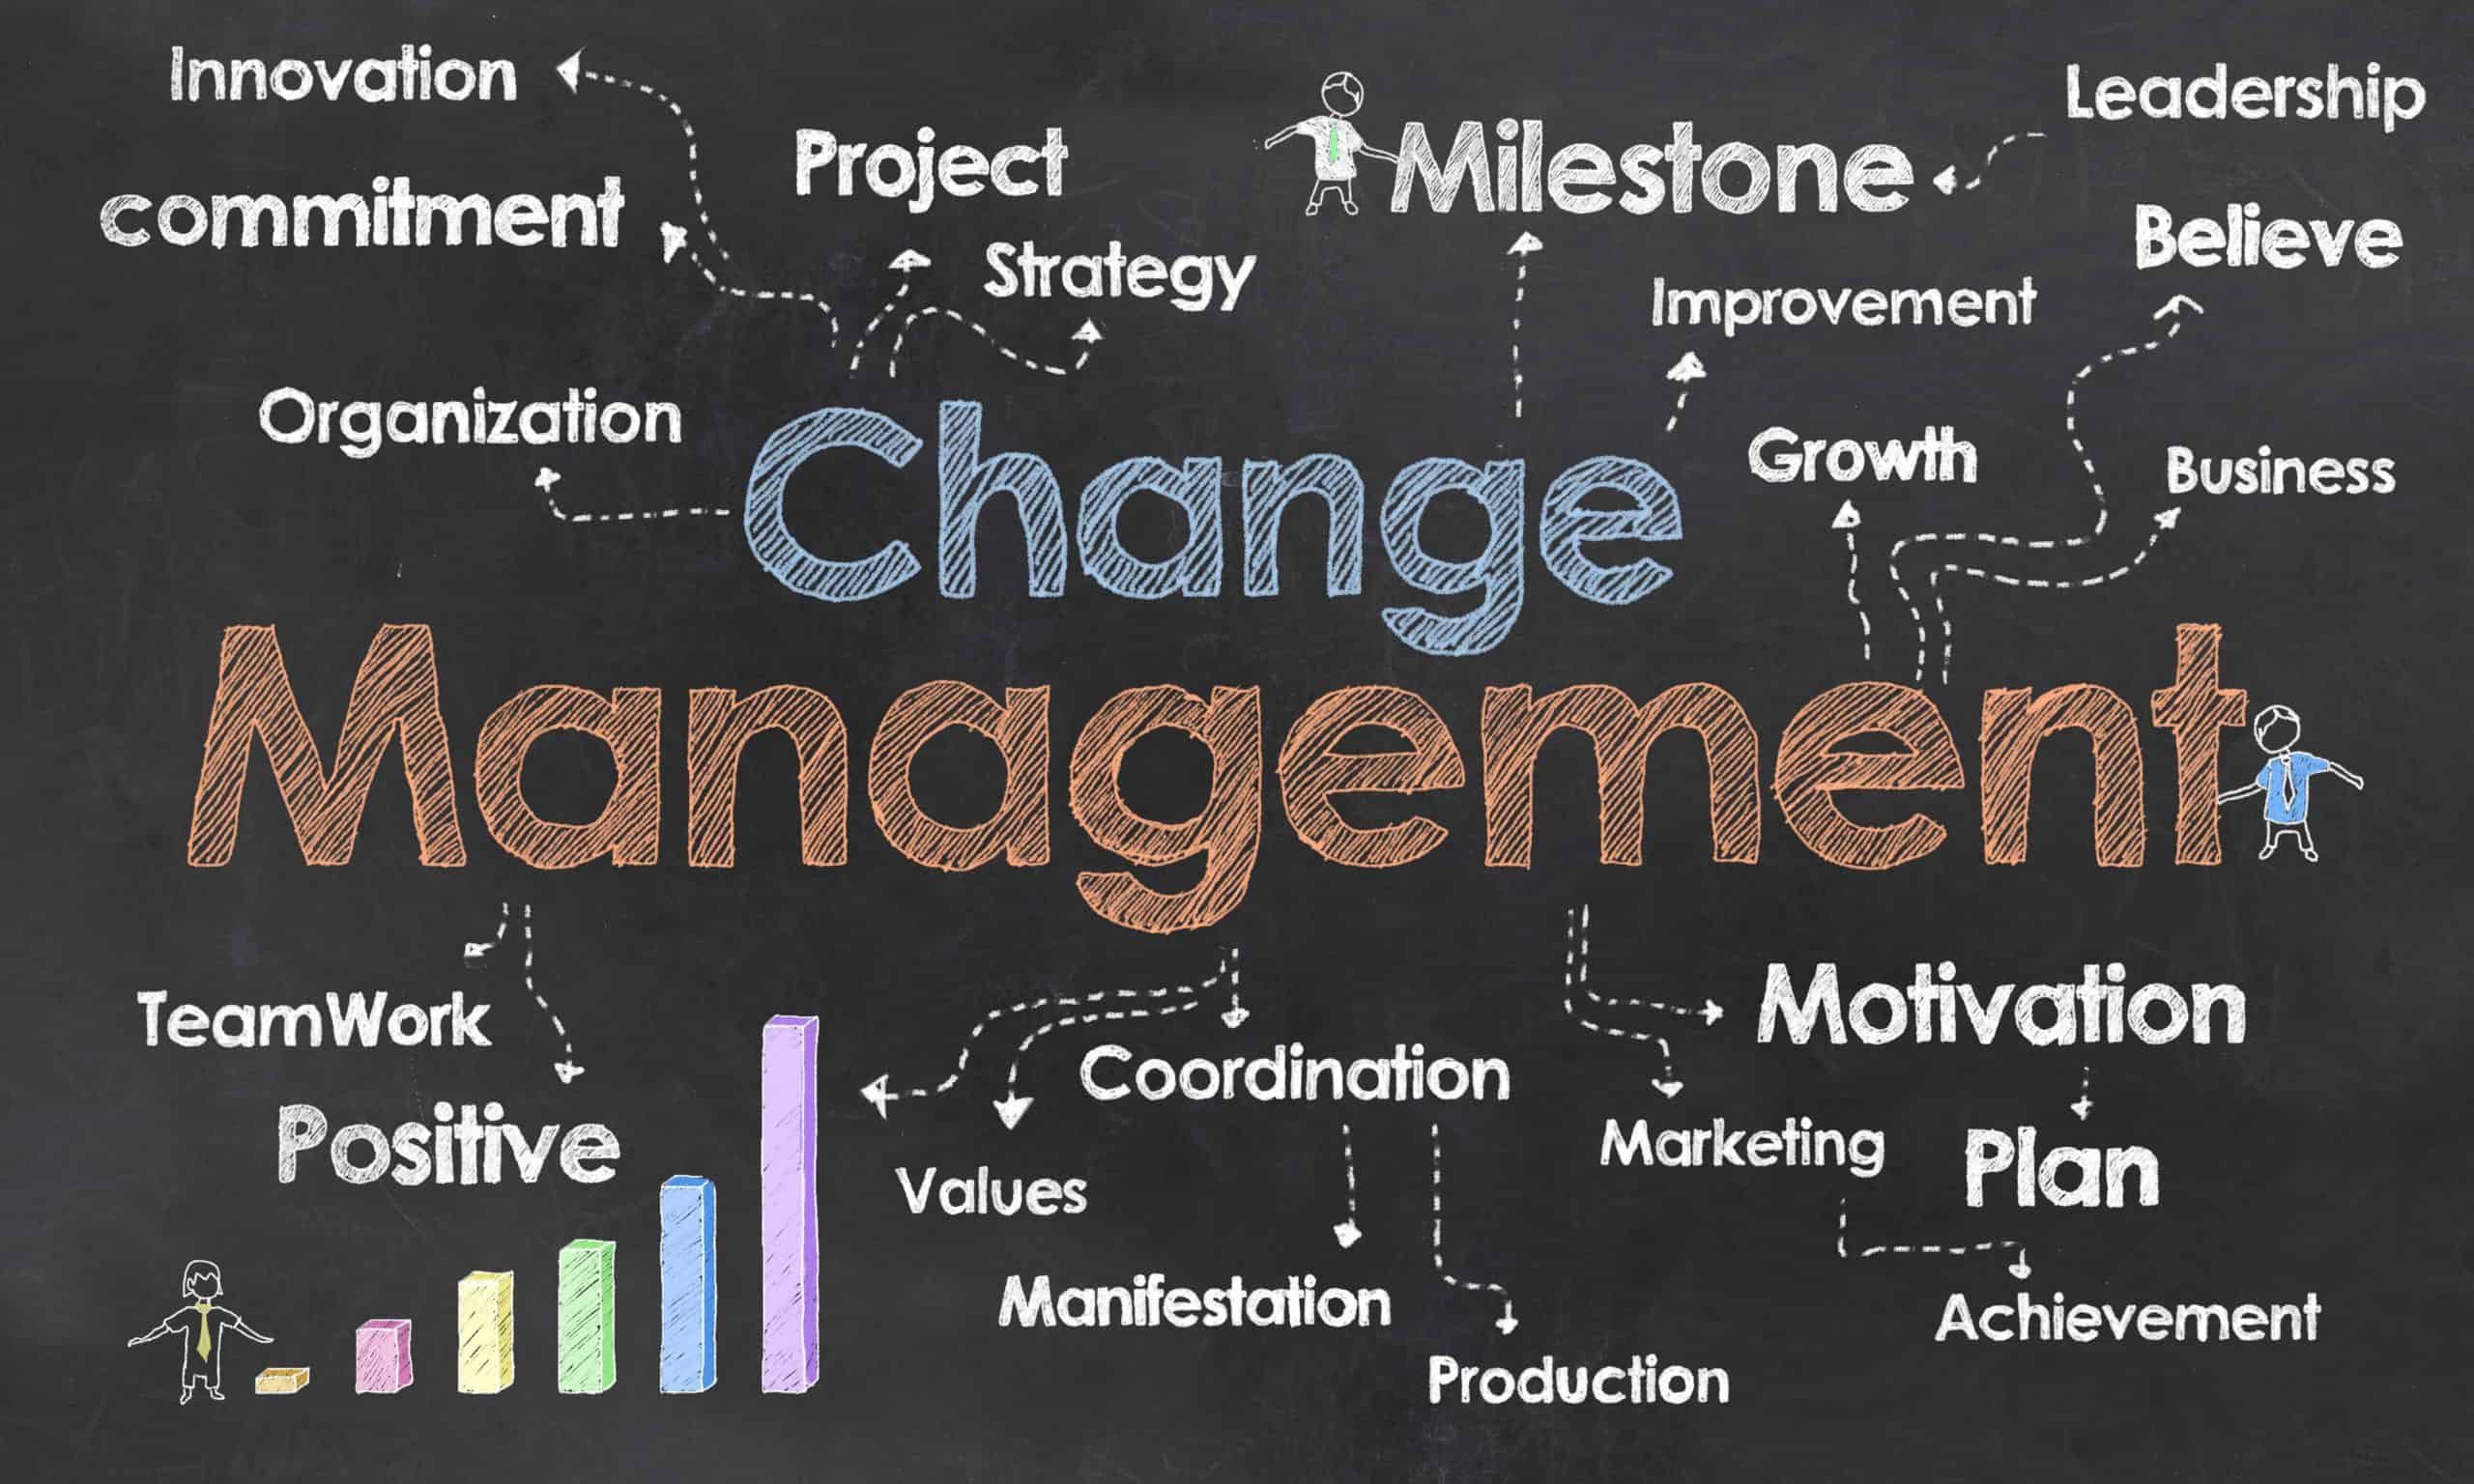 Change management - So you want change? How to avoid change management confusion, anxiety, resistance, frustration and false starts.